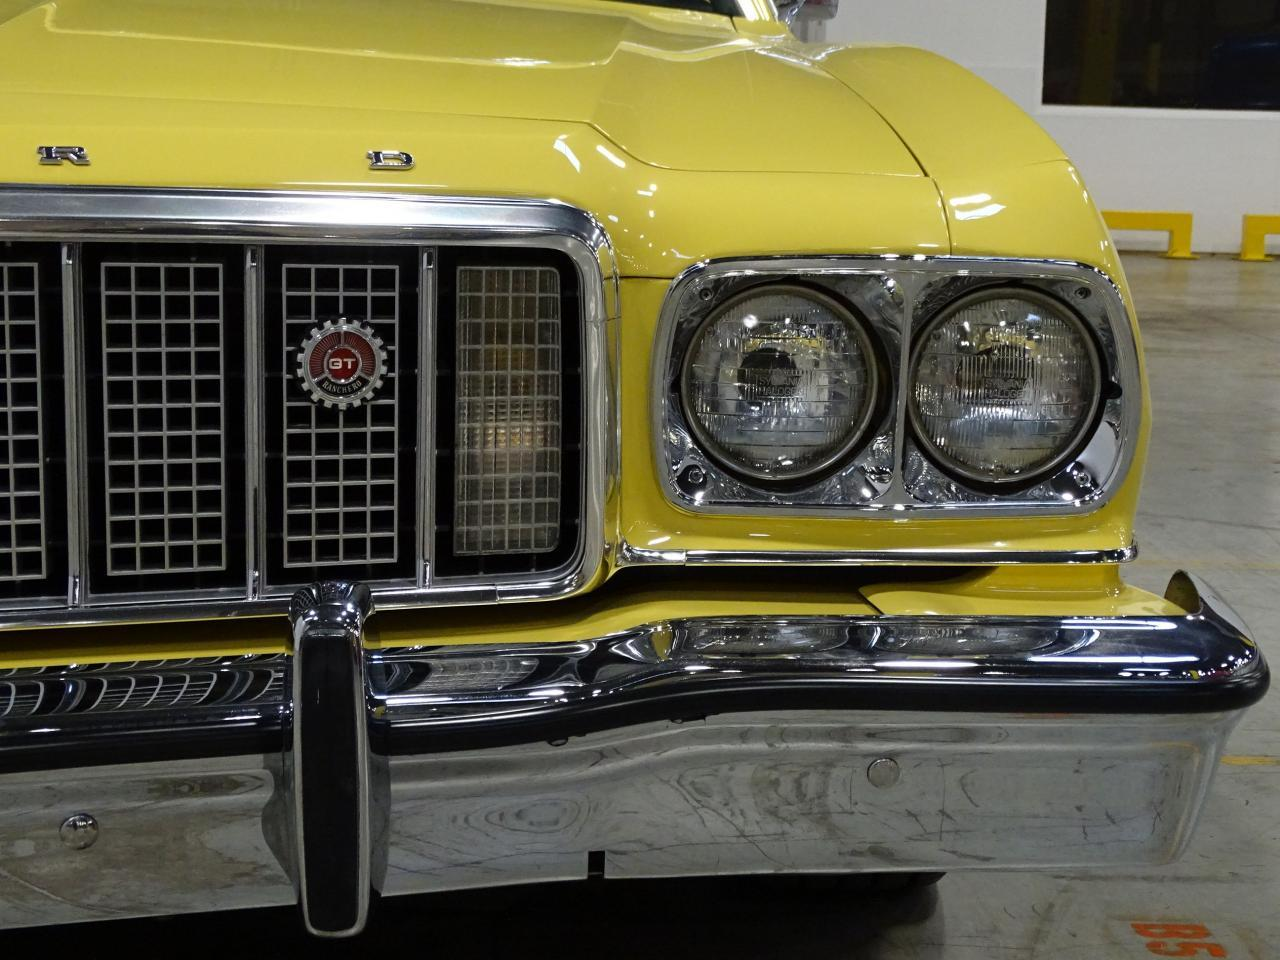 Large Picture of '76 Ranchero located in New Jersey - $20,995.00 Offered by Gateway Classic Cars - Philadelphia - MOAF